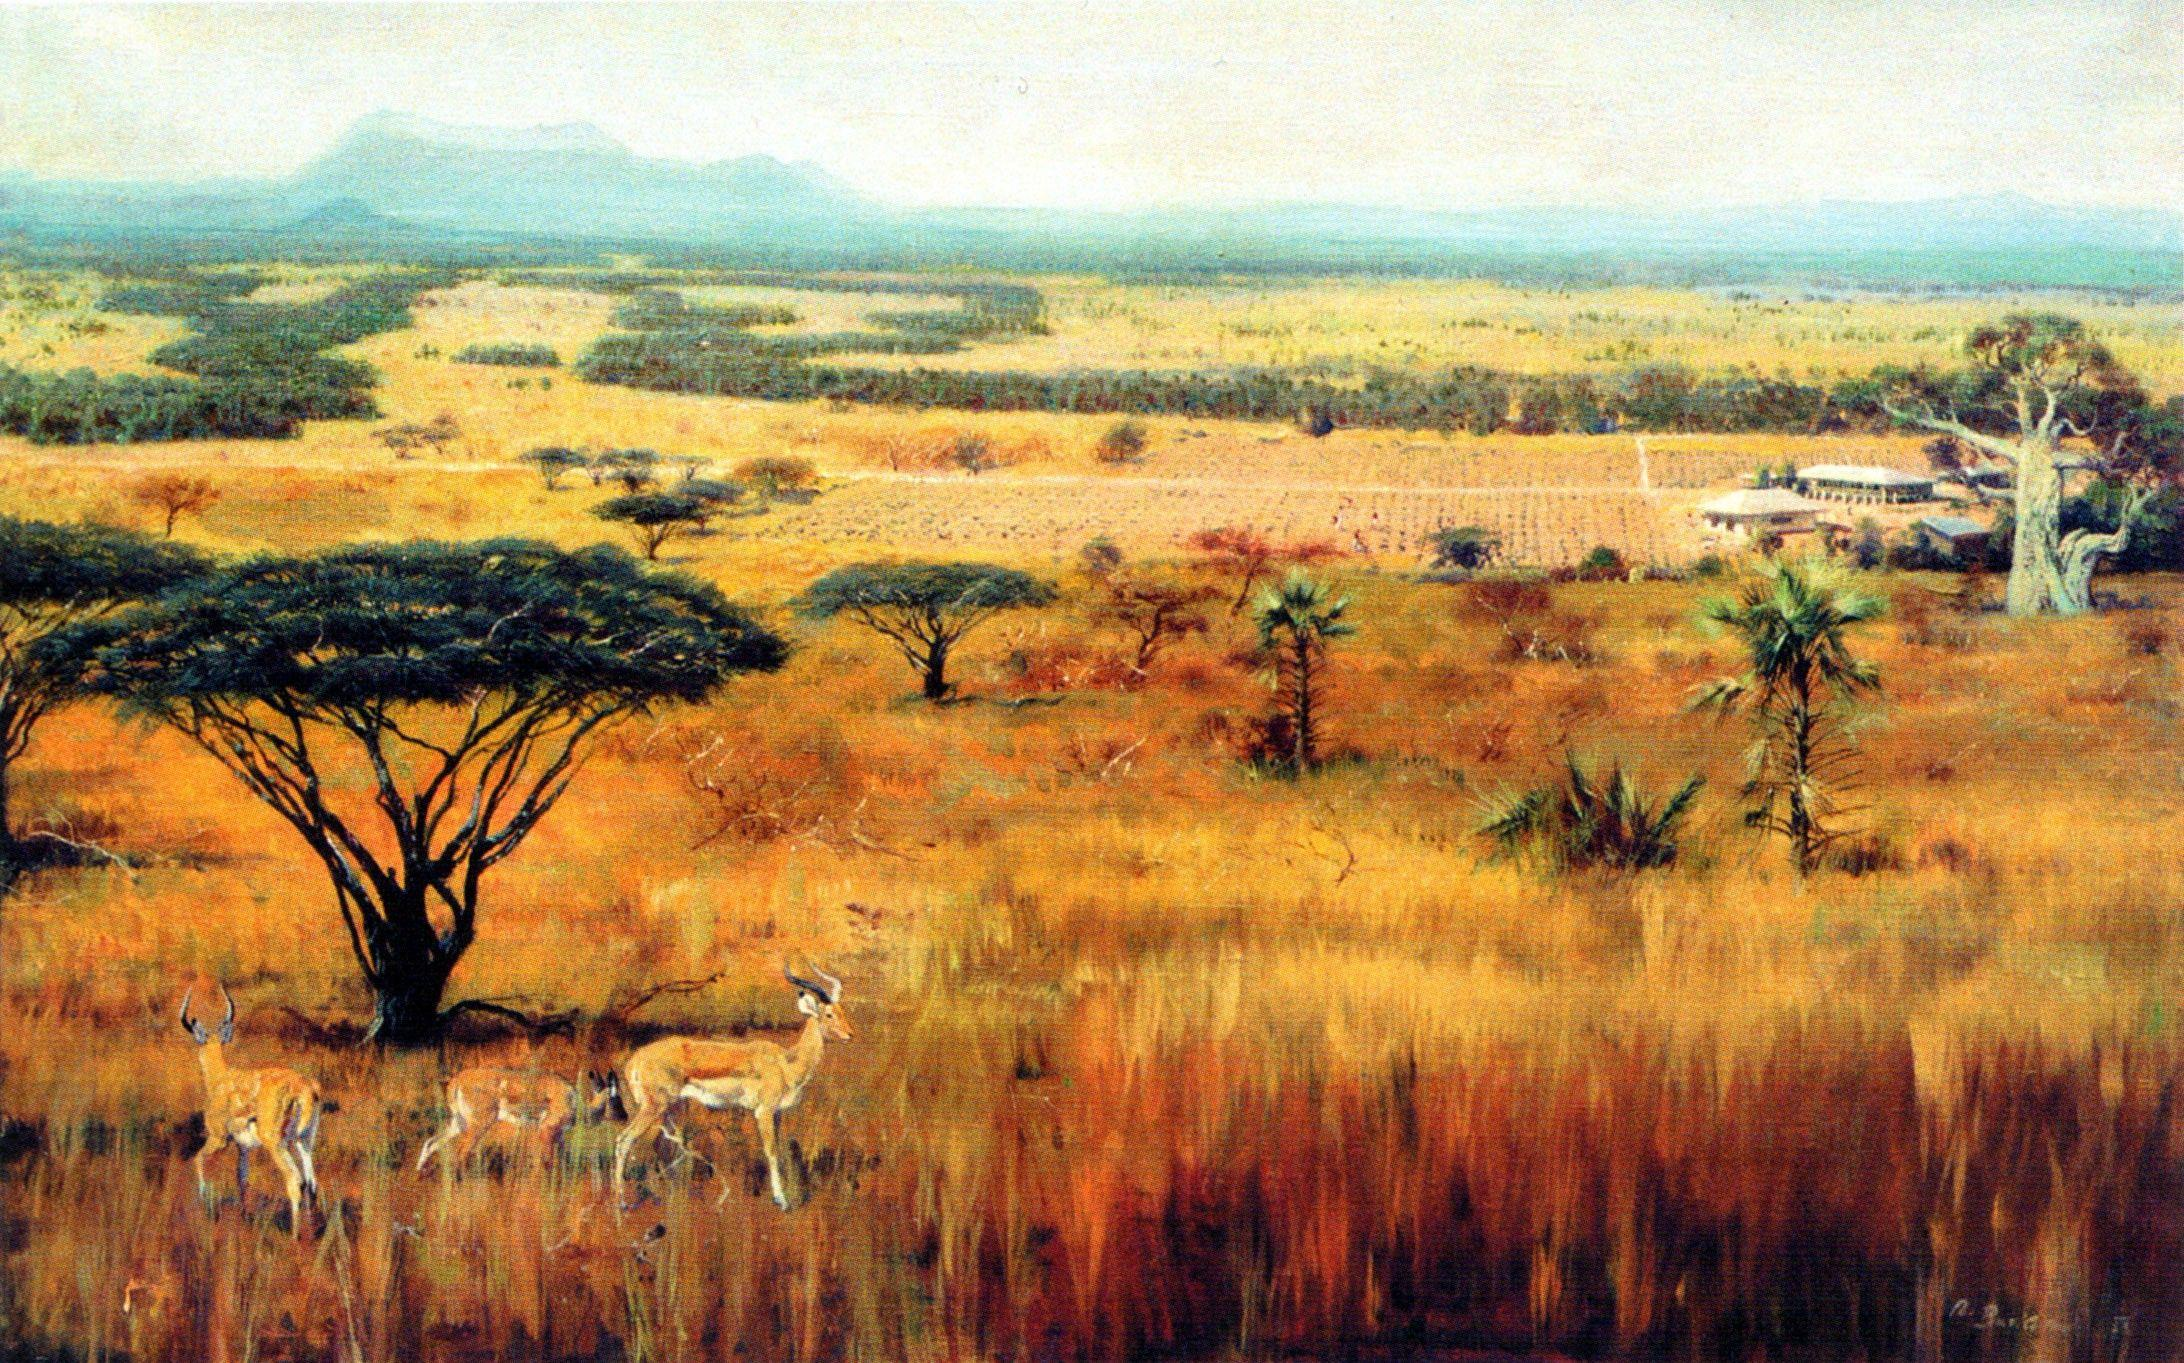 Savana Hd African Savanna Wallpapers Wallpaper Cave